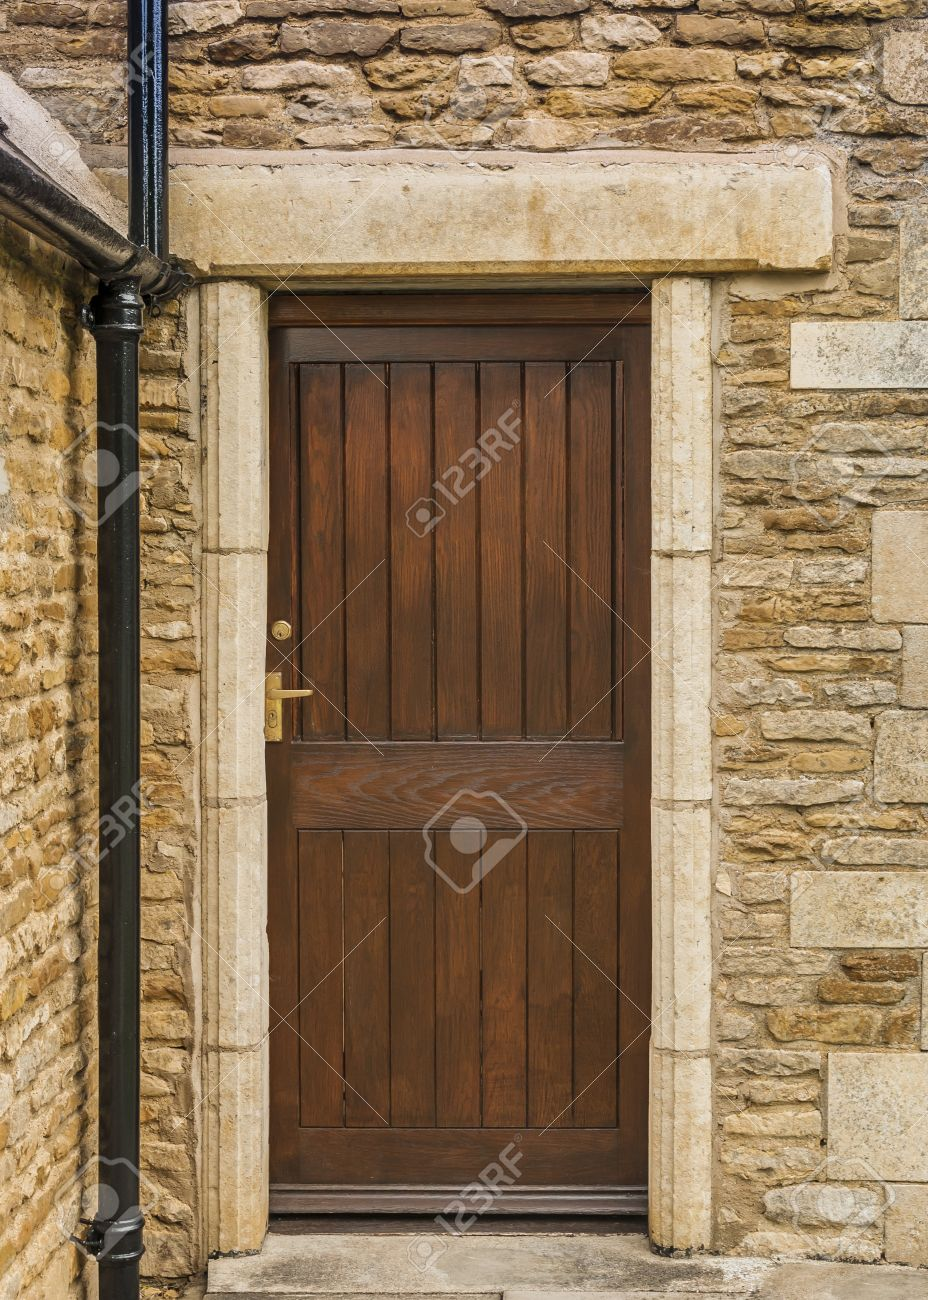 Brown Wooden Slatted Door With Lock And Lever Handle Stock Photo ...